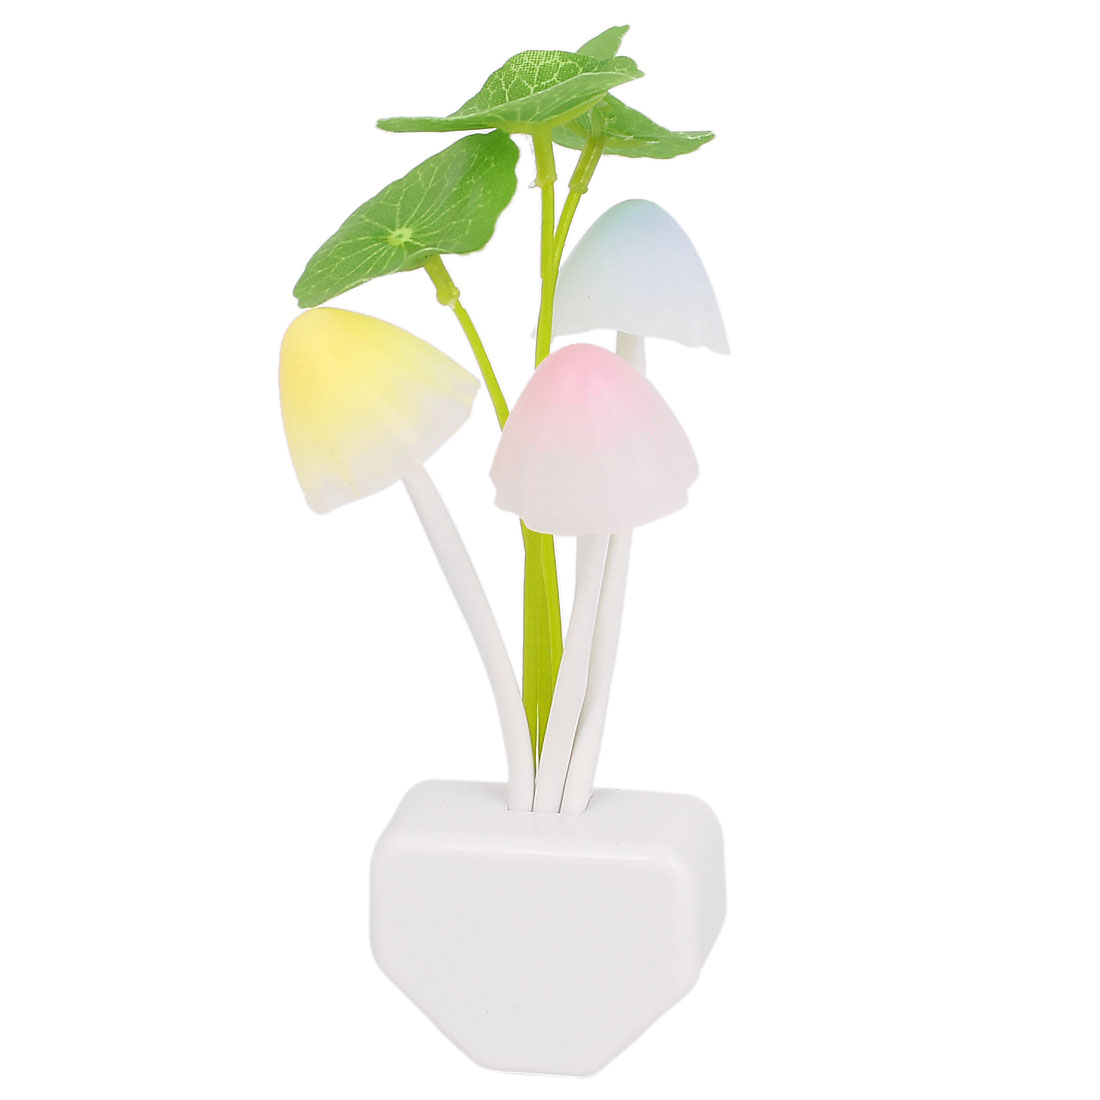 US Plug AC 110-220V Mushroom LED Dream Night Light Colorful